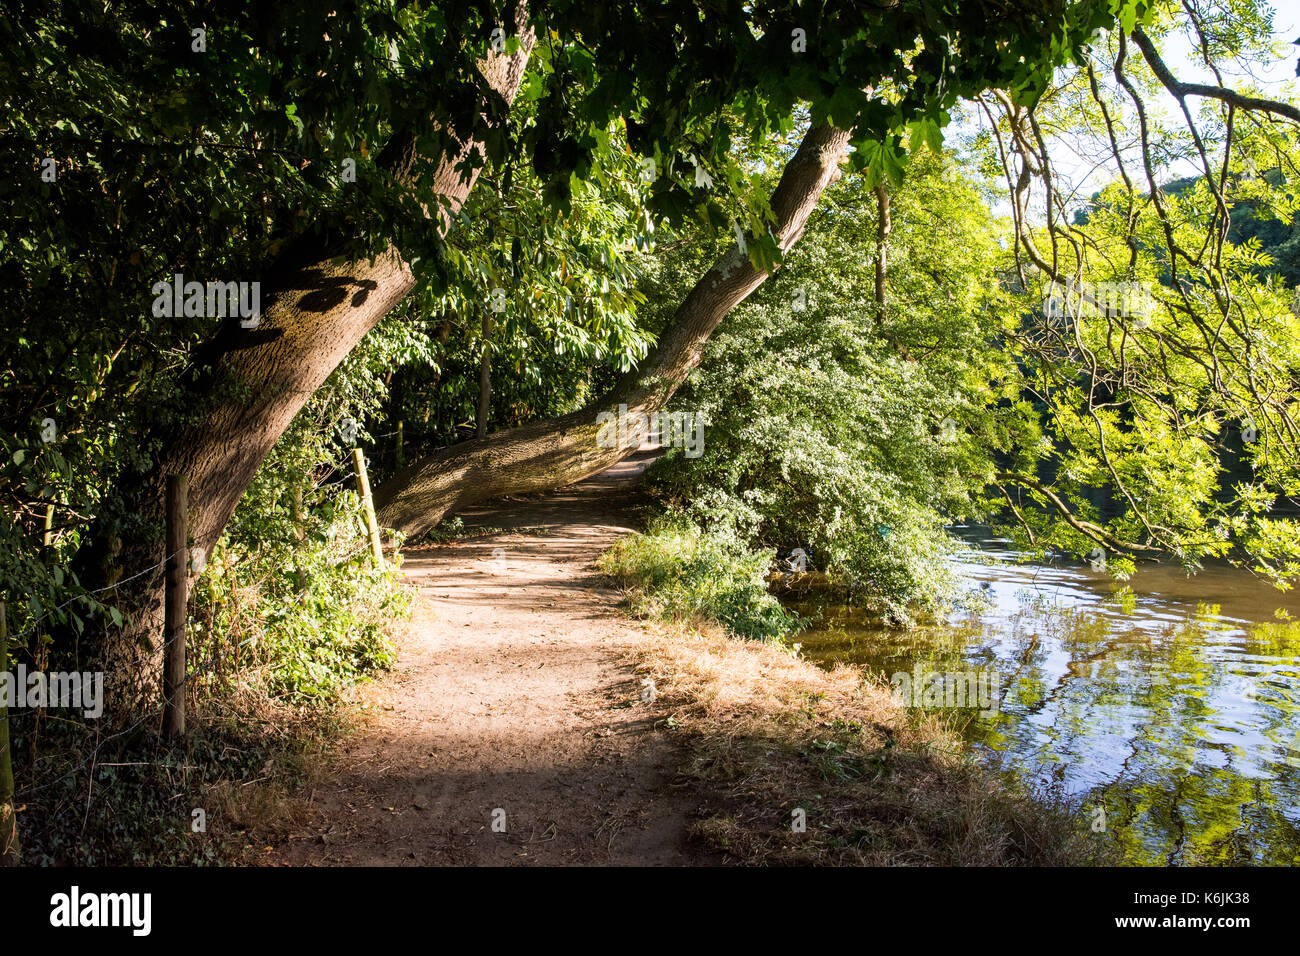 The Thames footpath alongside the meandering River Thames in the flood plains of Goring, up river from Reading in Berkshire. - Stock Image